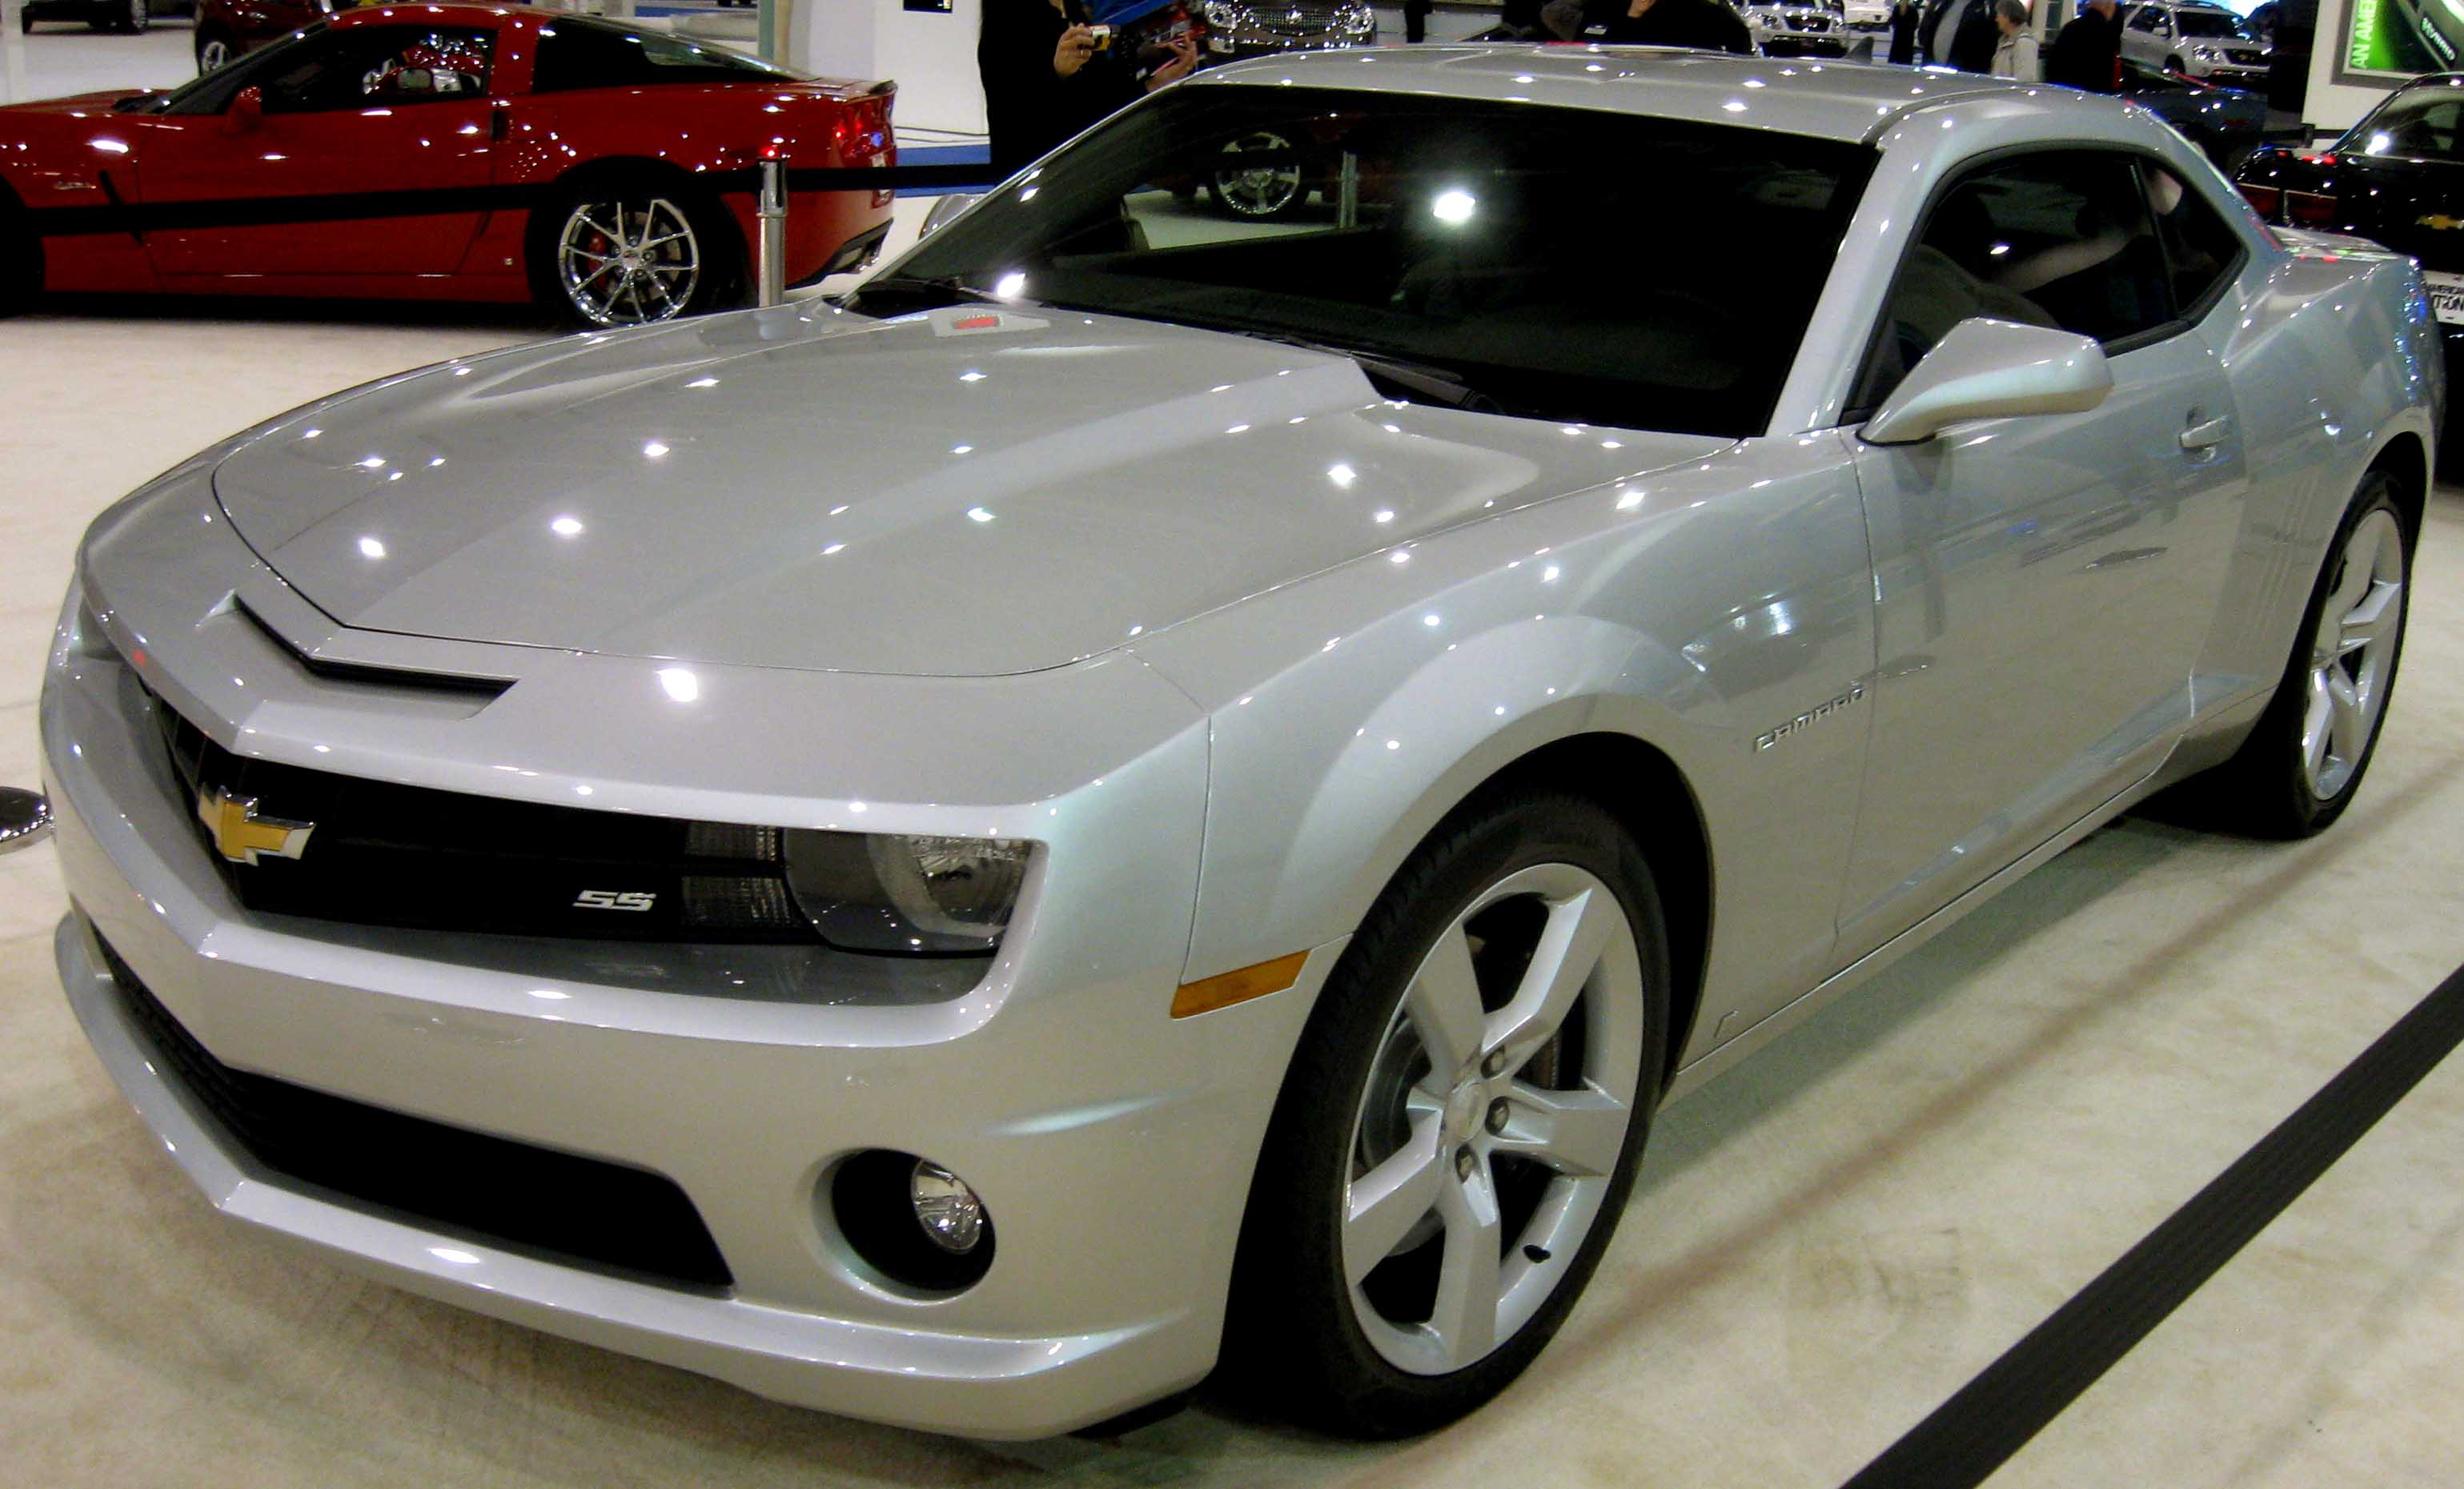 2010 Chevrolet Camaro - A Muscle Car